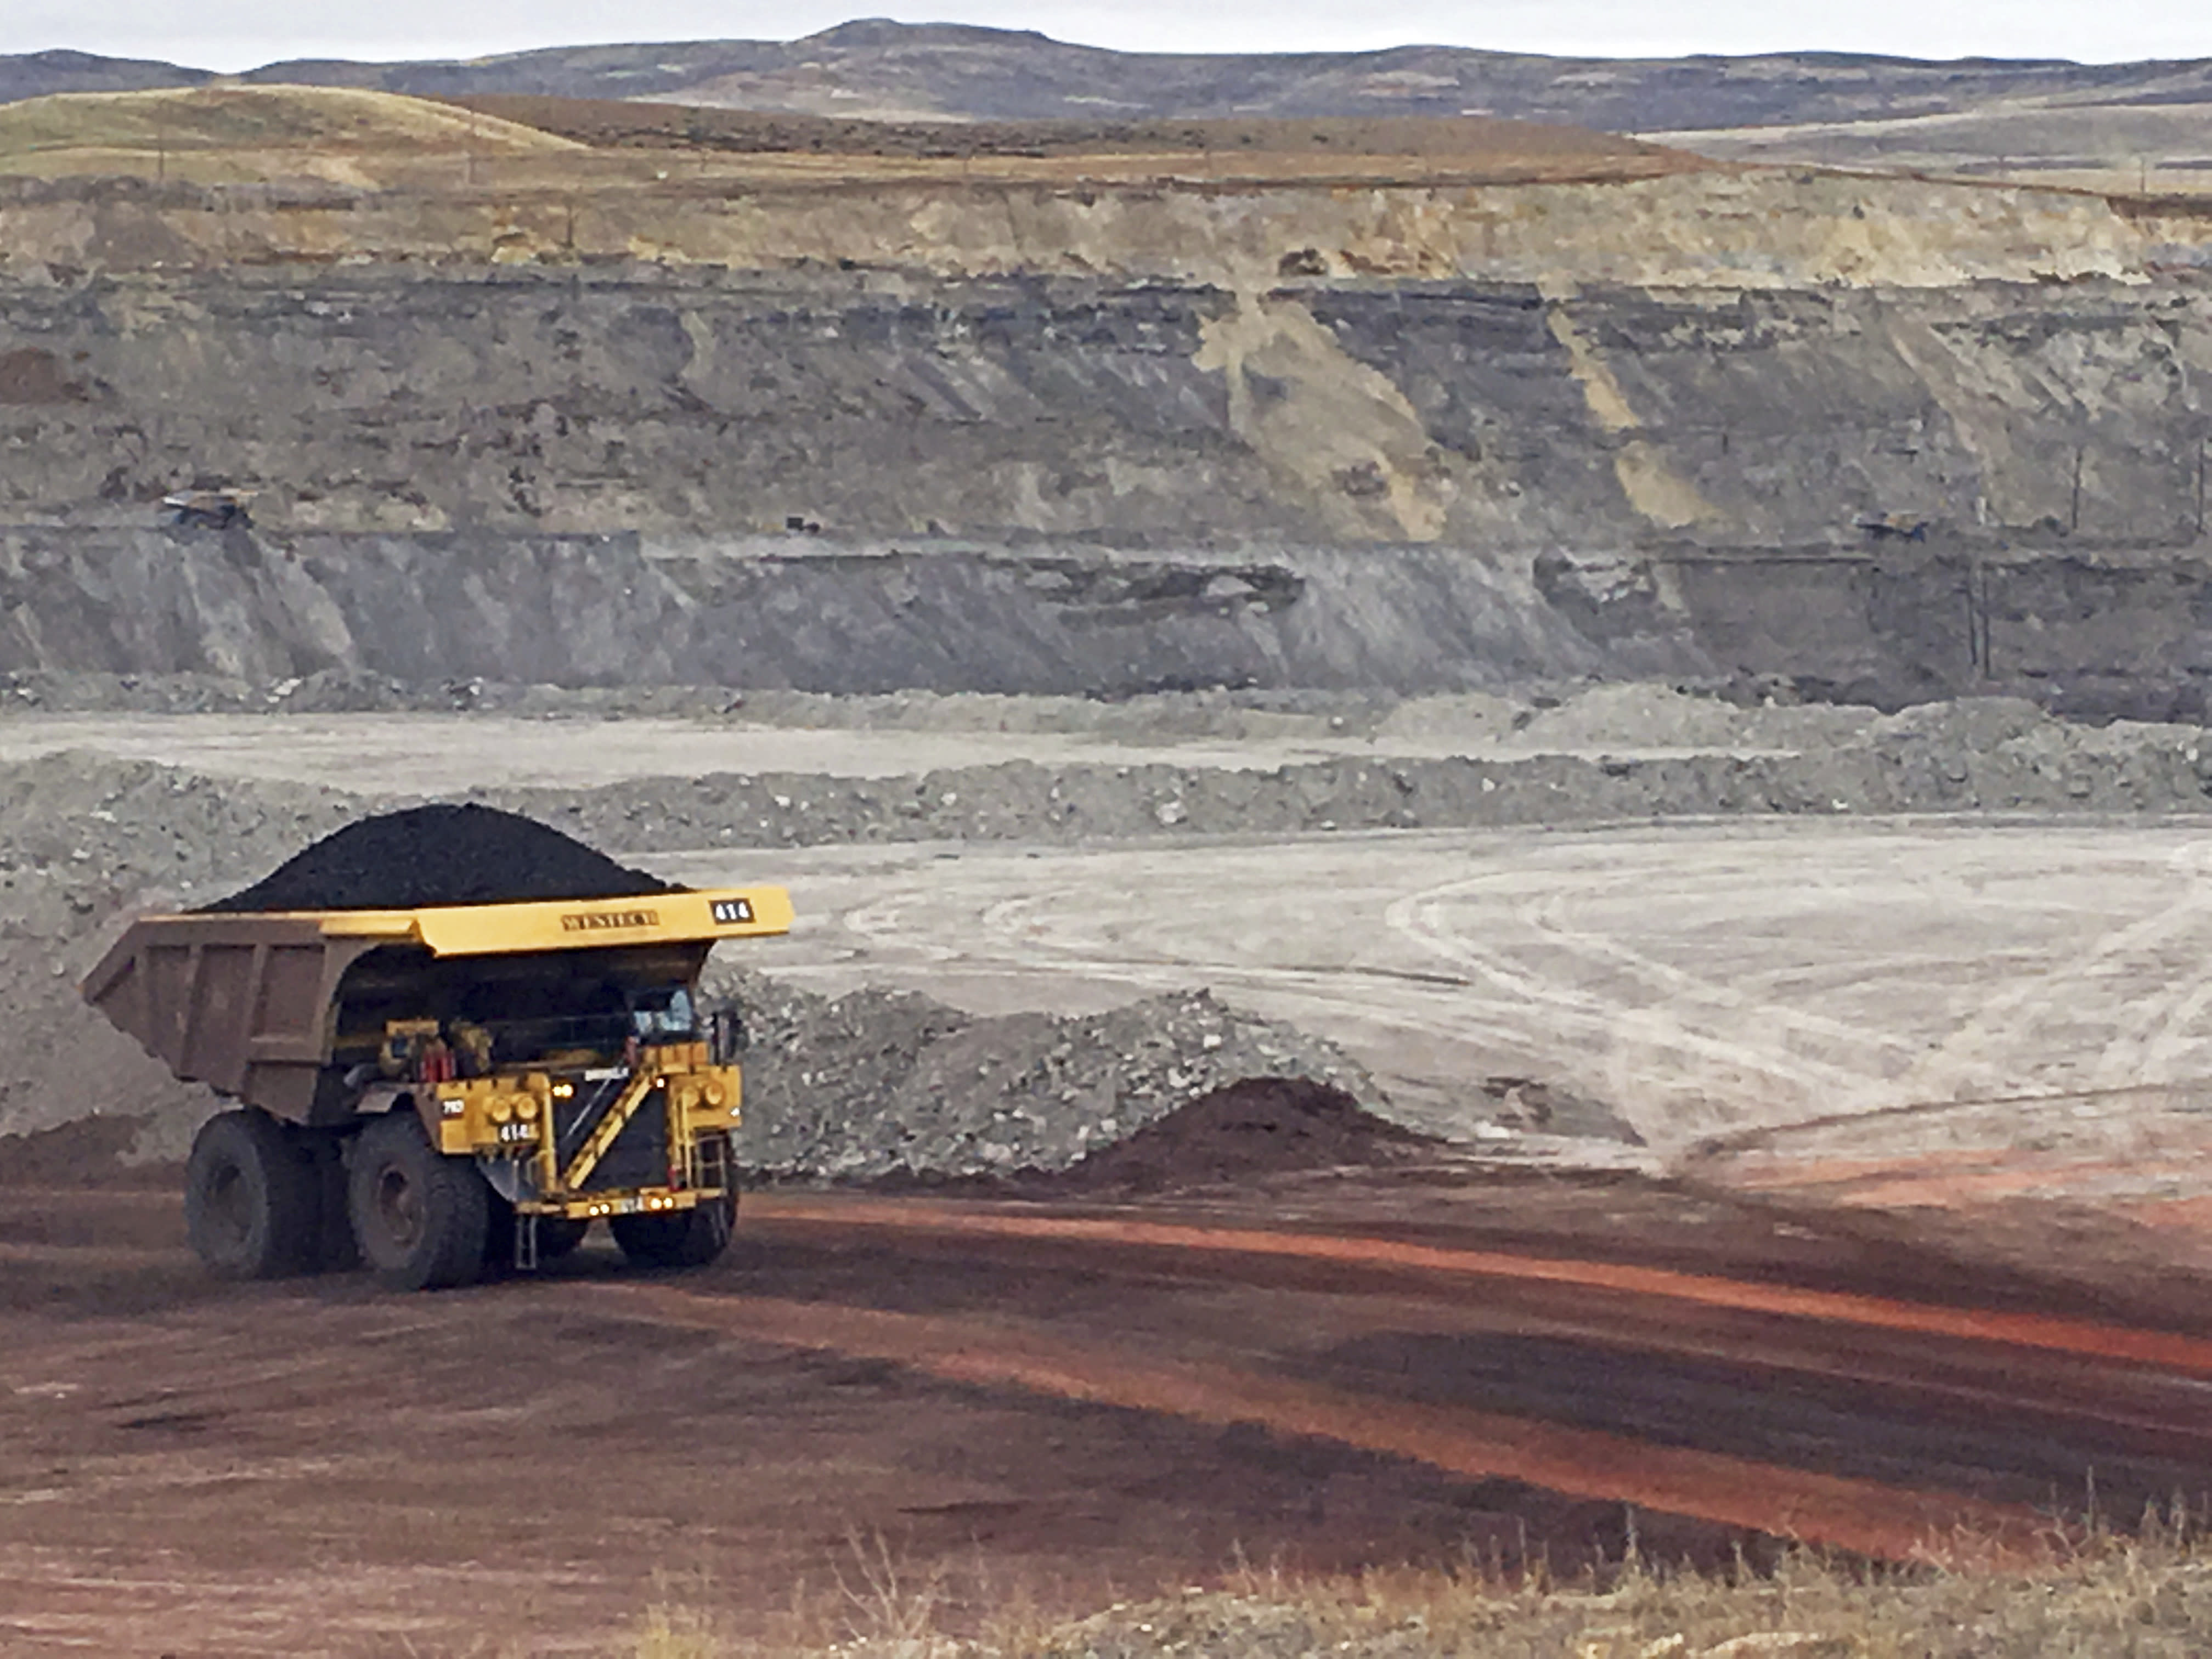 FILE - In this March 28, 2017, file photo, a dump truck hauls coal at Contura Energy's Eagle Butte Mine near Gillette, Wyo. Contura Energy has made a successful bid at auction of $33.75 million for the assets of the Eagle Butte and Belle Ayr mines in Wyoming and Pax Surface Mine in Scarbro, W. Va. They've been closed since Milton, West Virginia-based Blackjewel LLC filed for Chapter 11 bankruptcy protection July 1. (AP Photo/Mead Gruver, File)